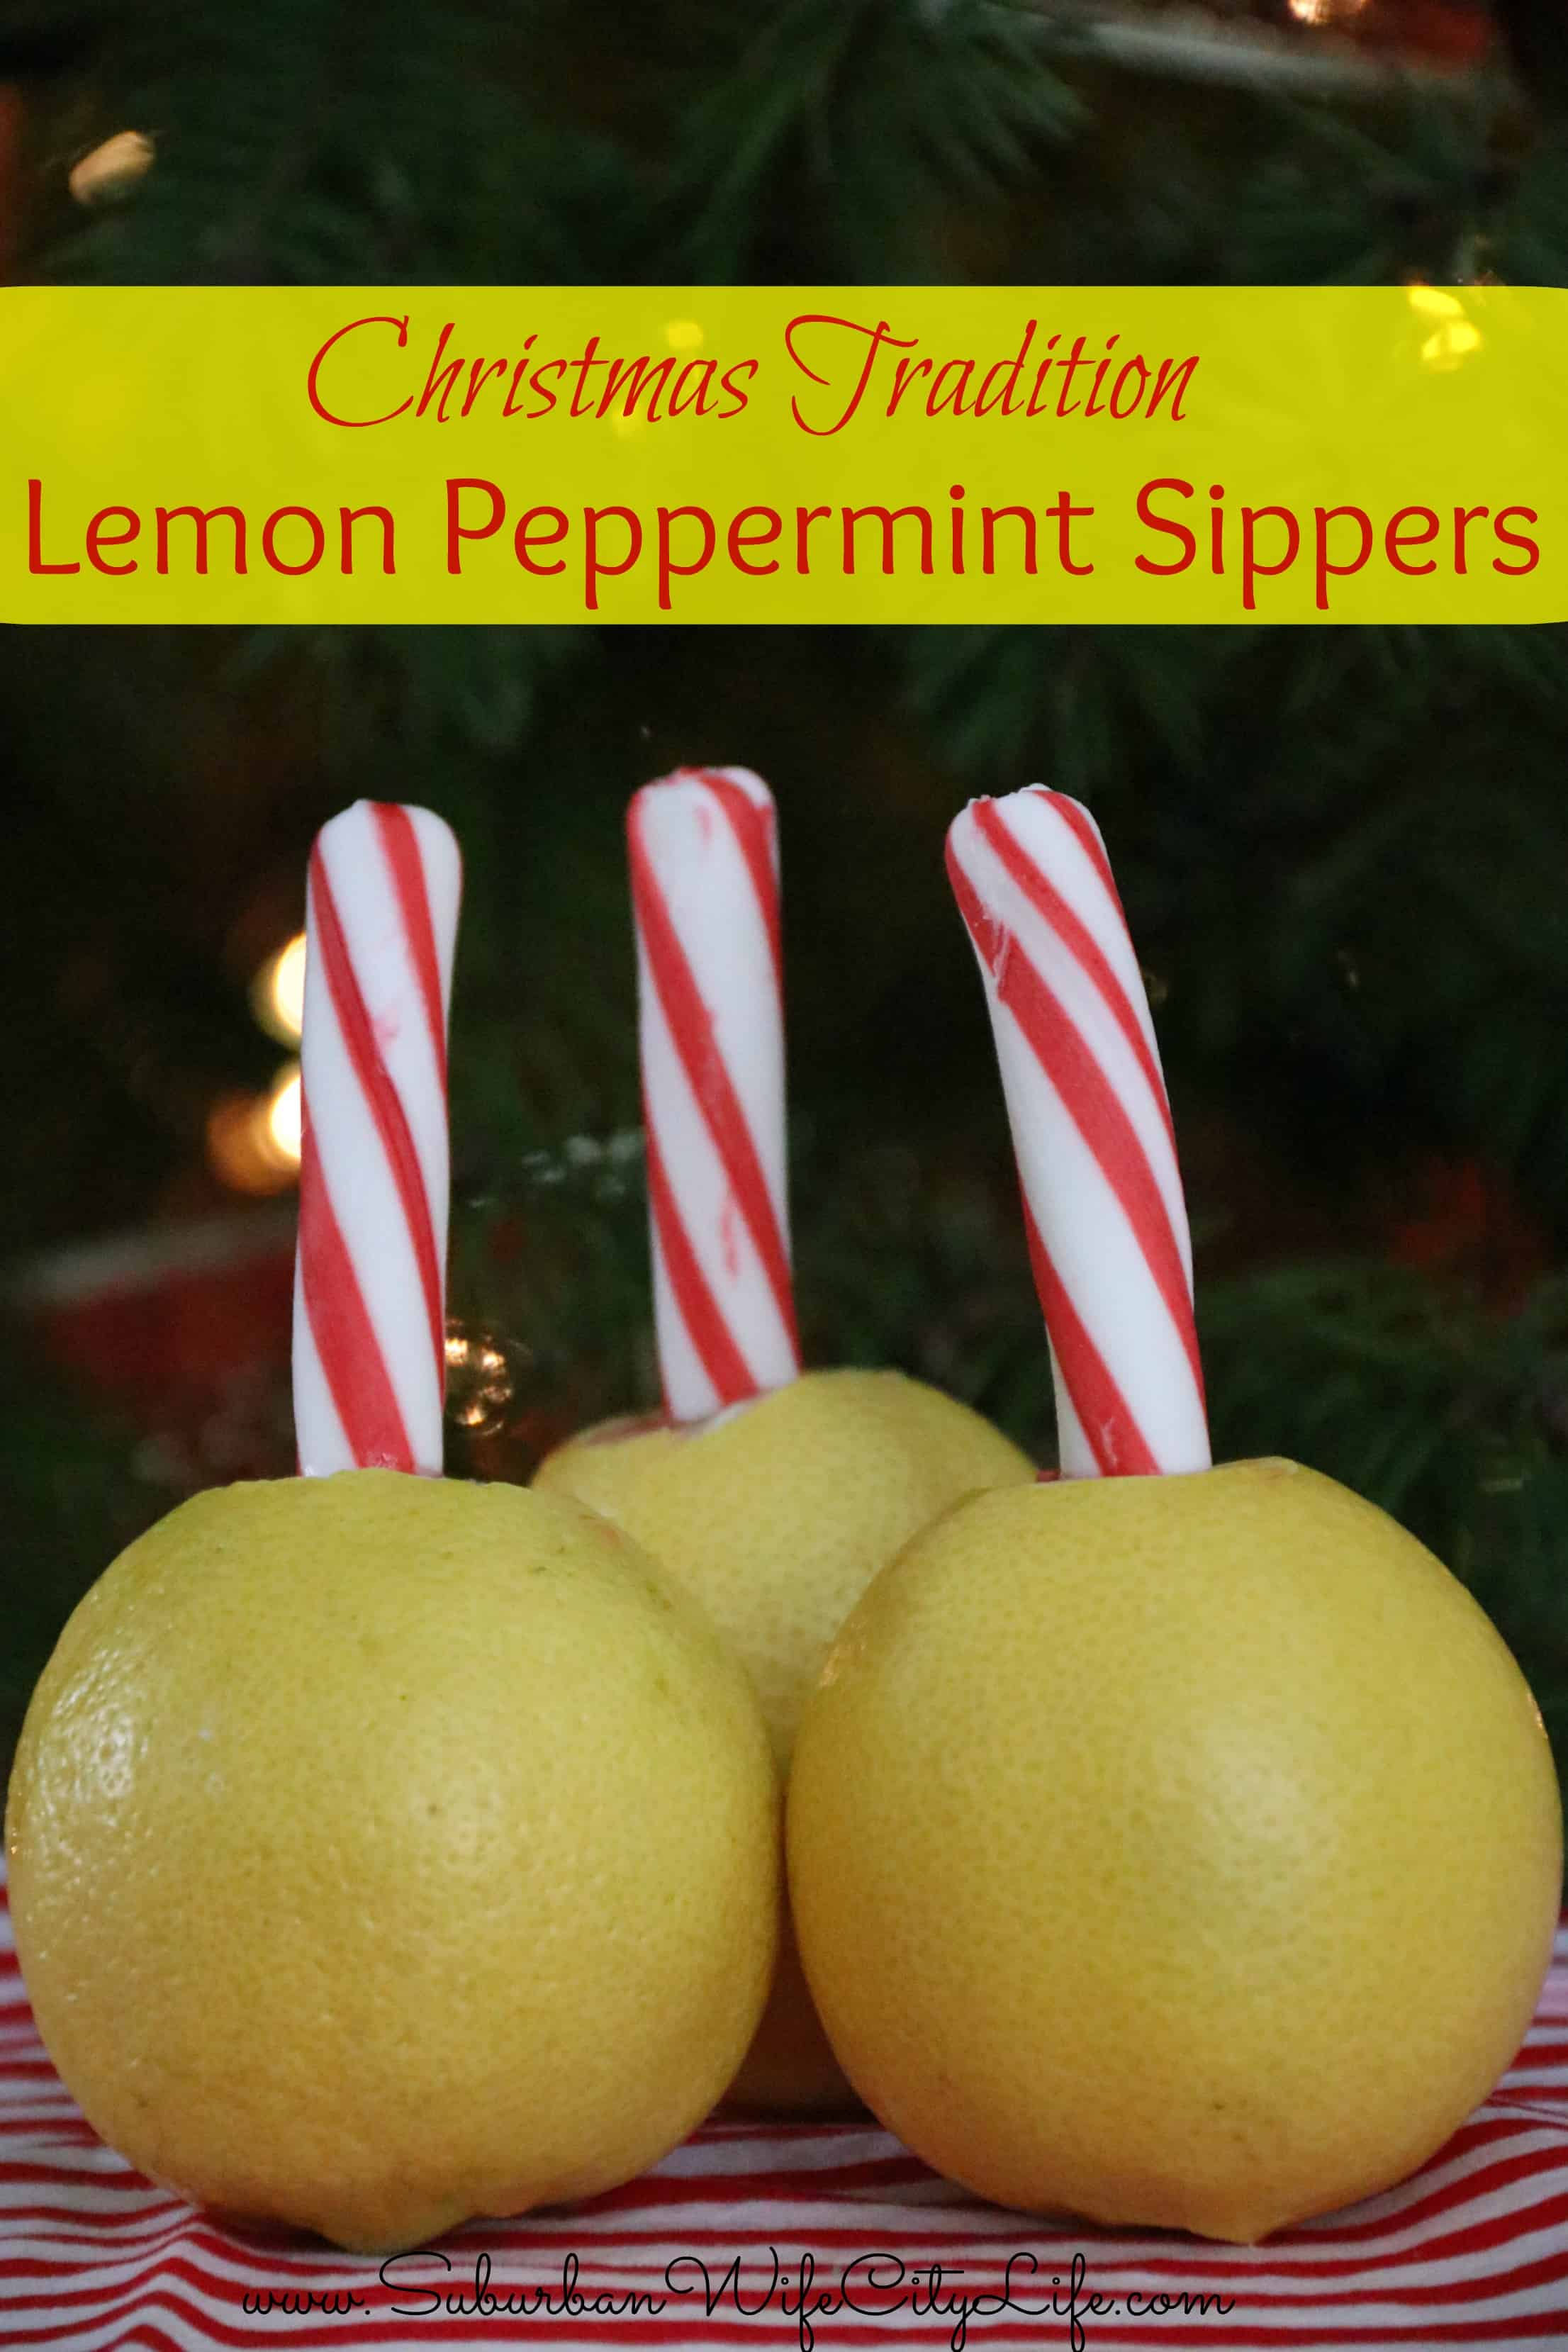 Lemon Peppermint Sippers